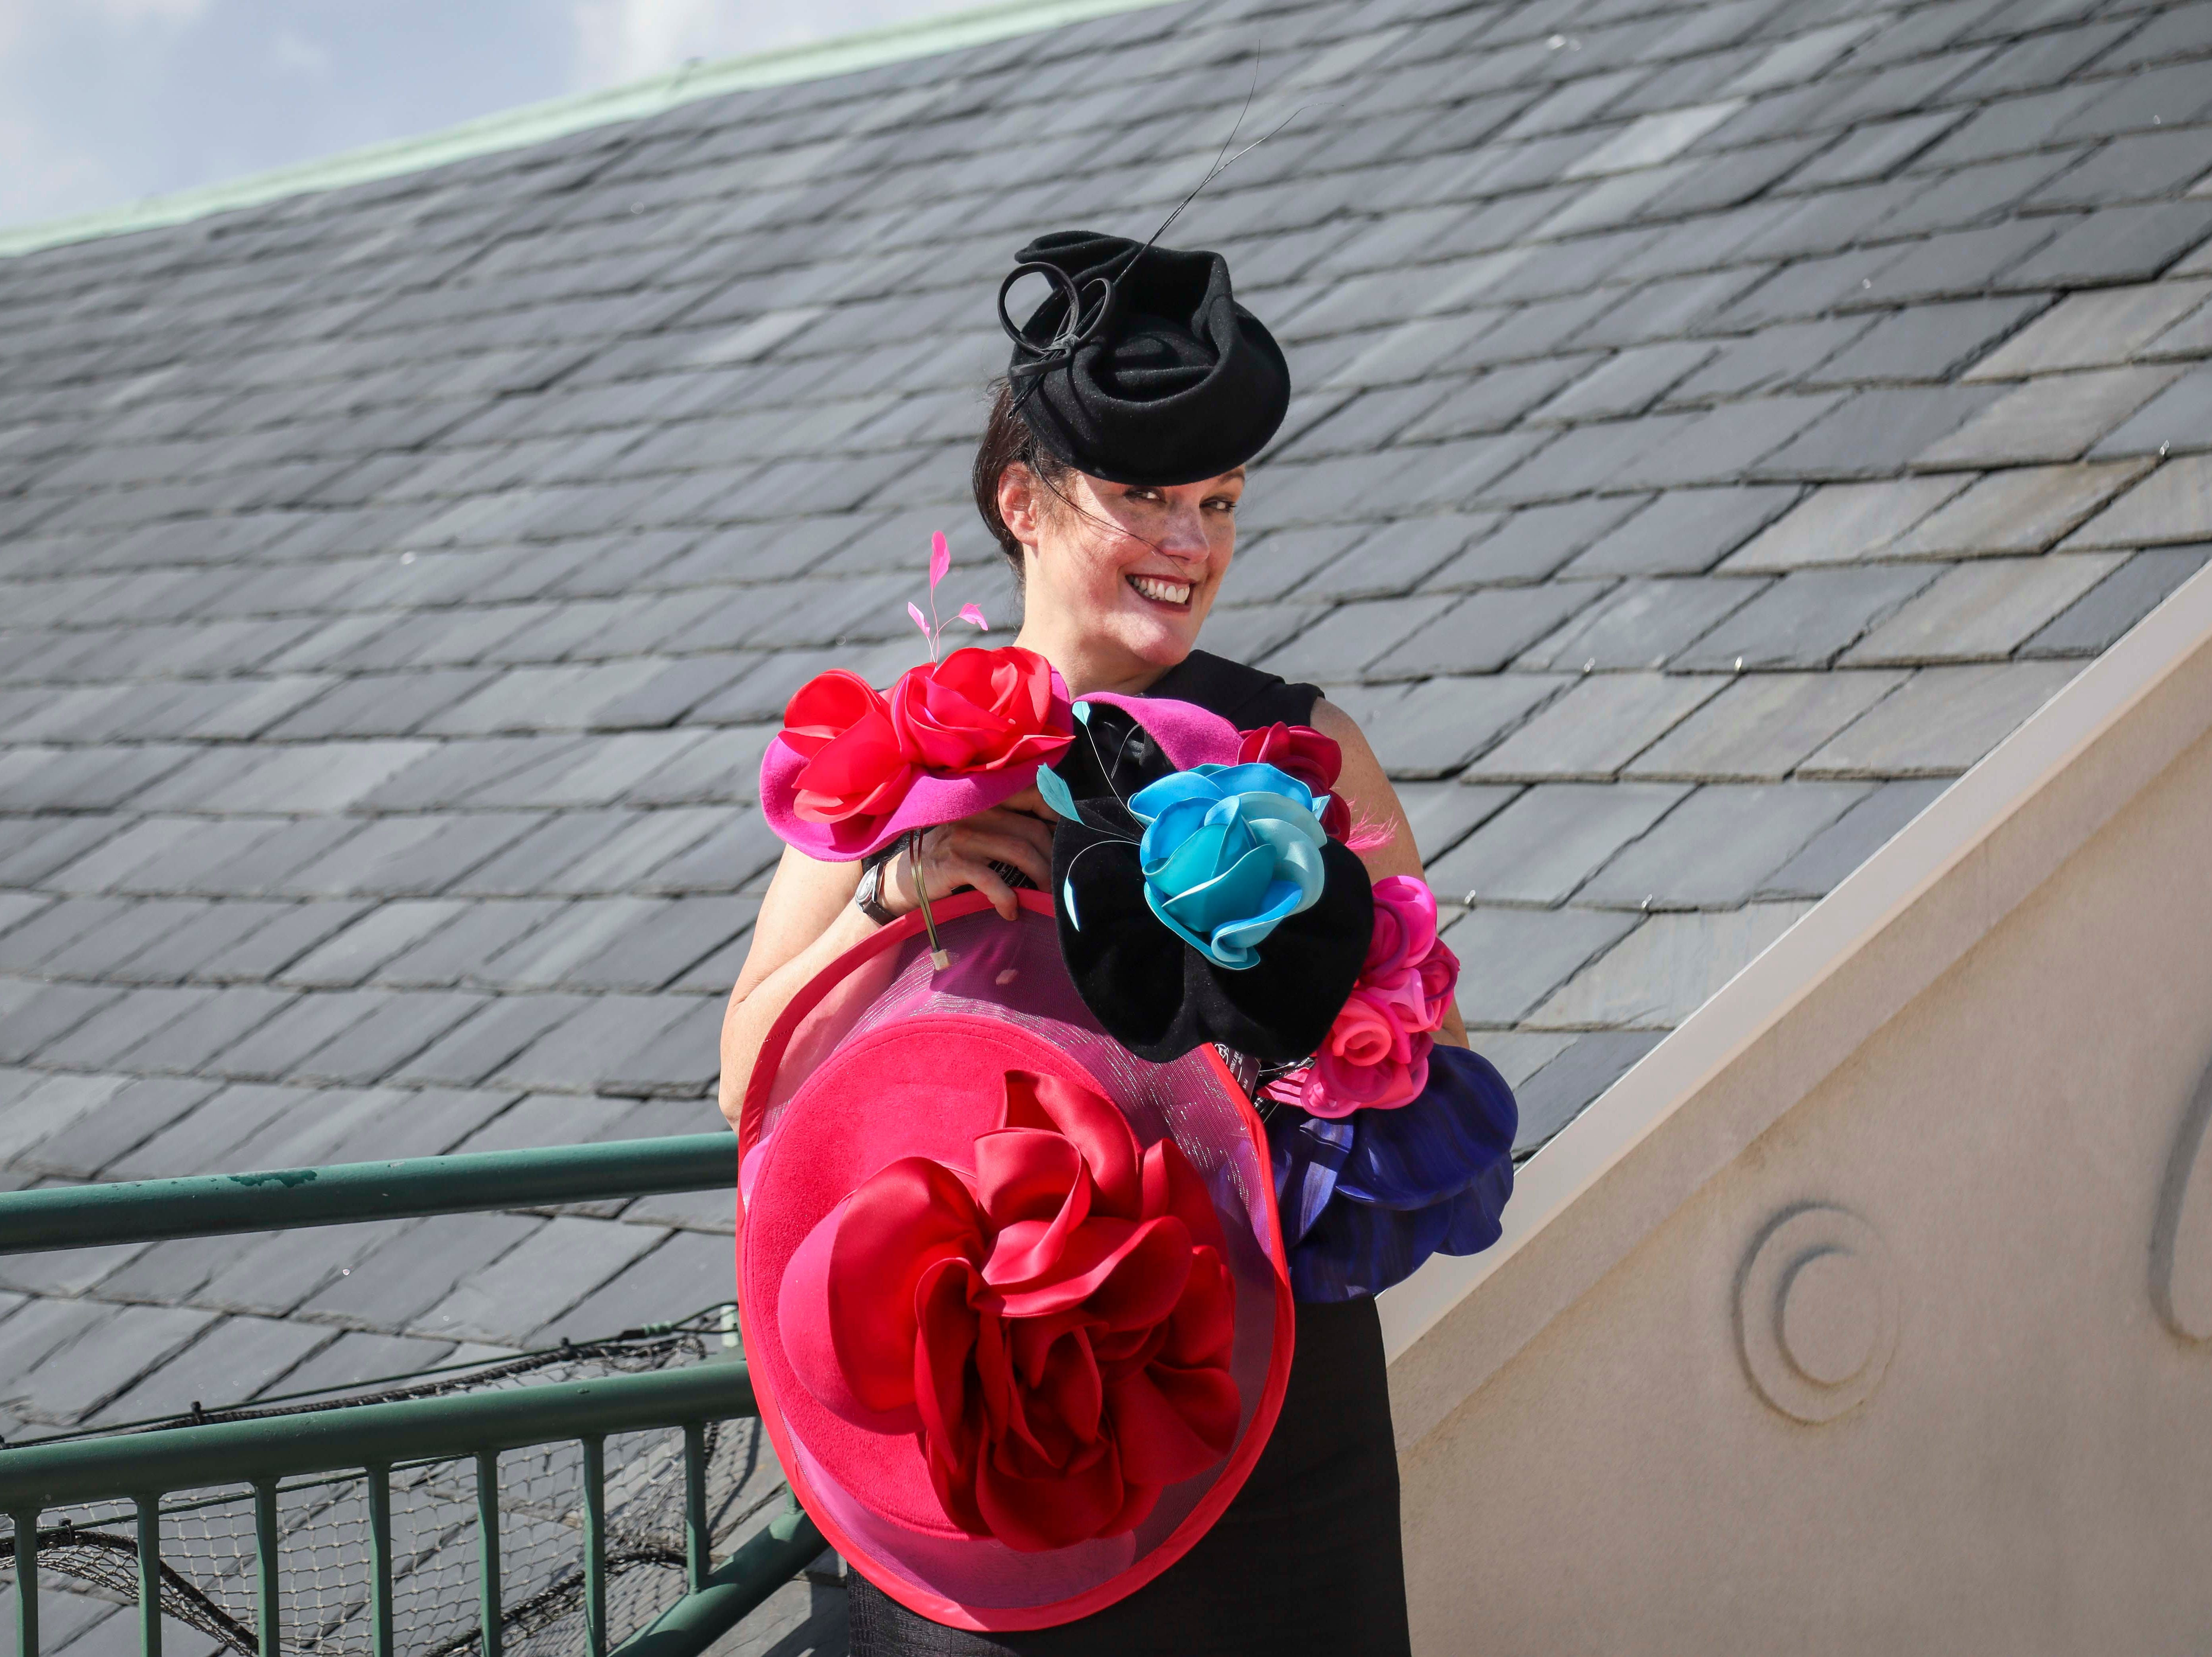 Christine Moore, track fashion expert and hatmaker, poses with her handmade Cam Hats made for the Breeder's Cup (November 2) at Churchill Downs on Wednesday, October 3, 2018.